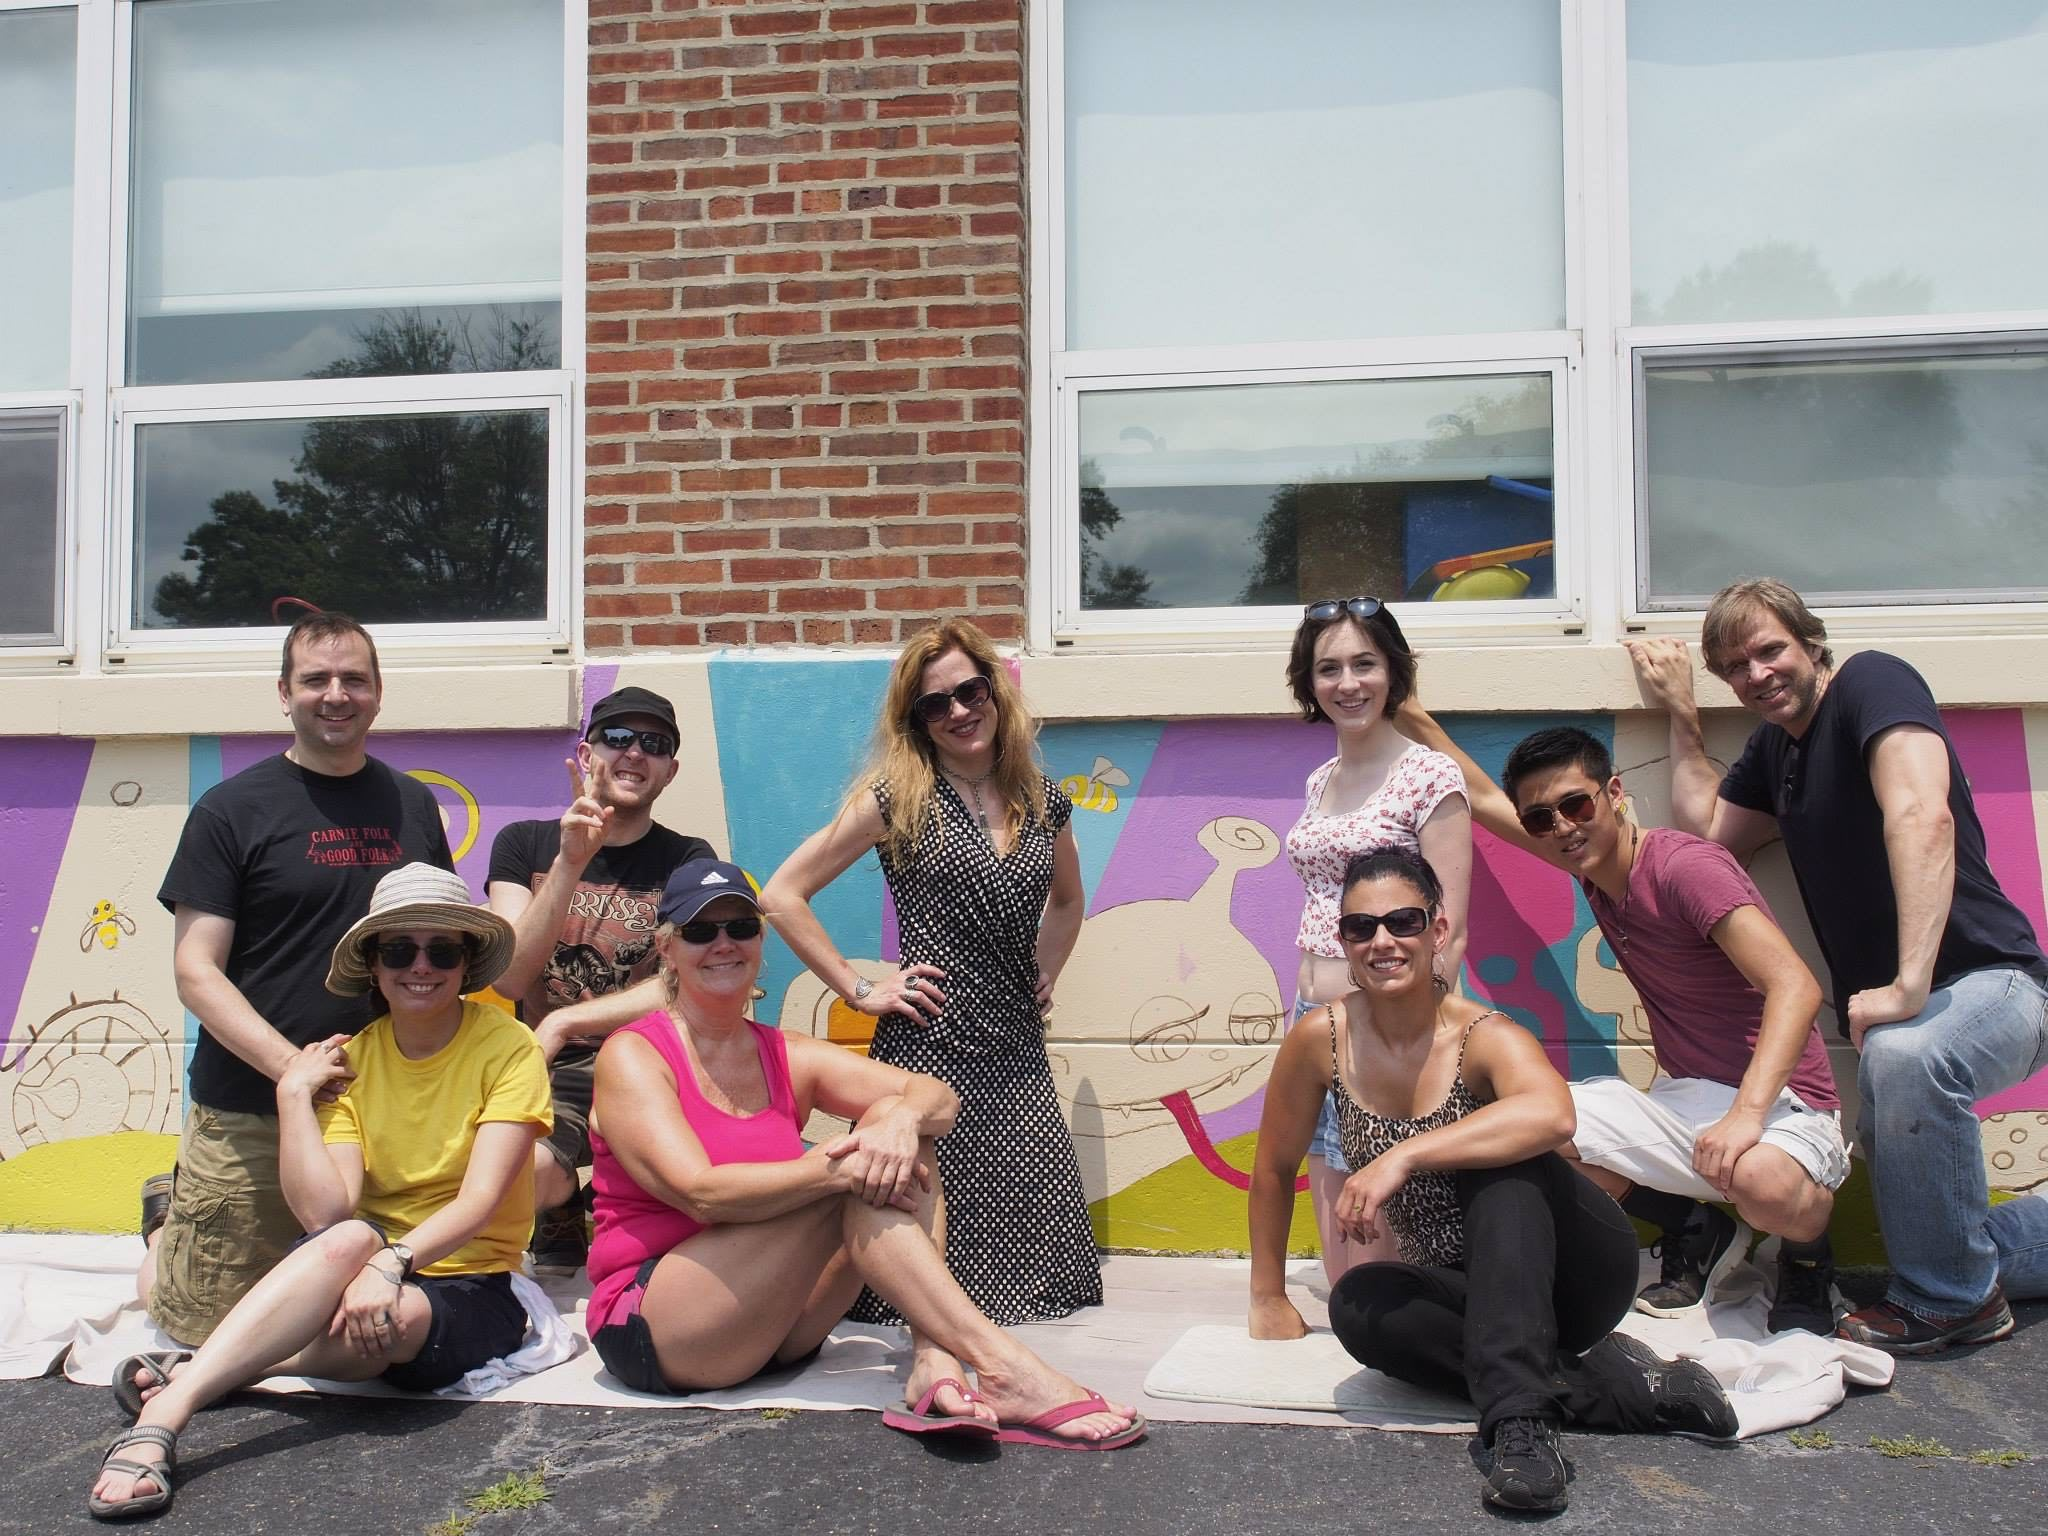 Clara Barton Elementary School Mural Painting Volunteers-Photo By Mike Neuhaus -www.centraliaandbeyond.com